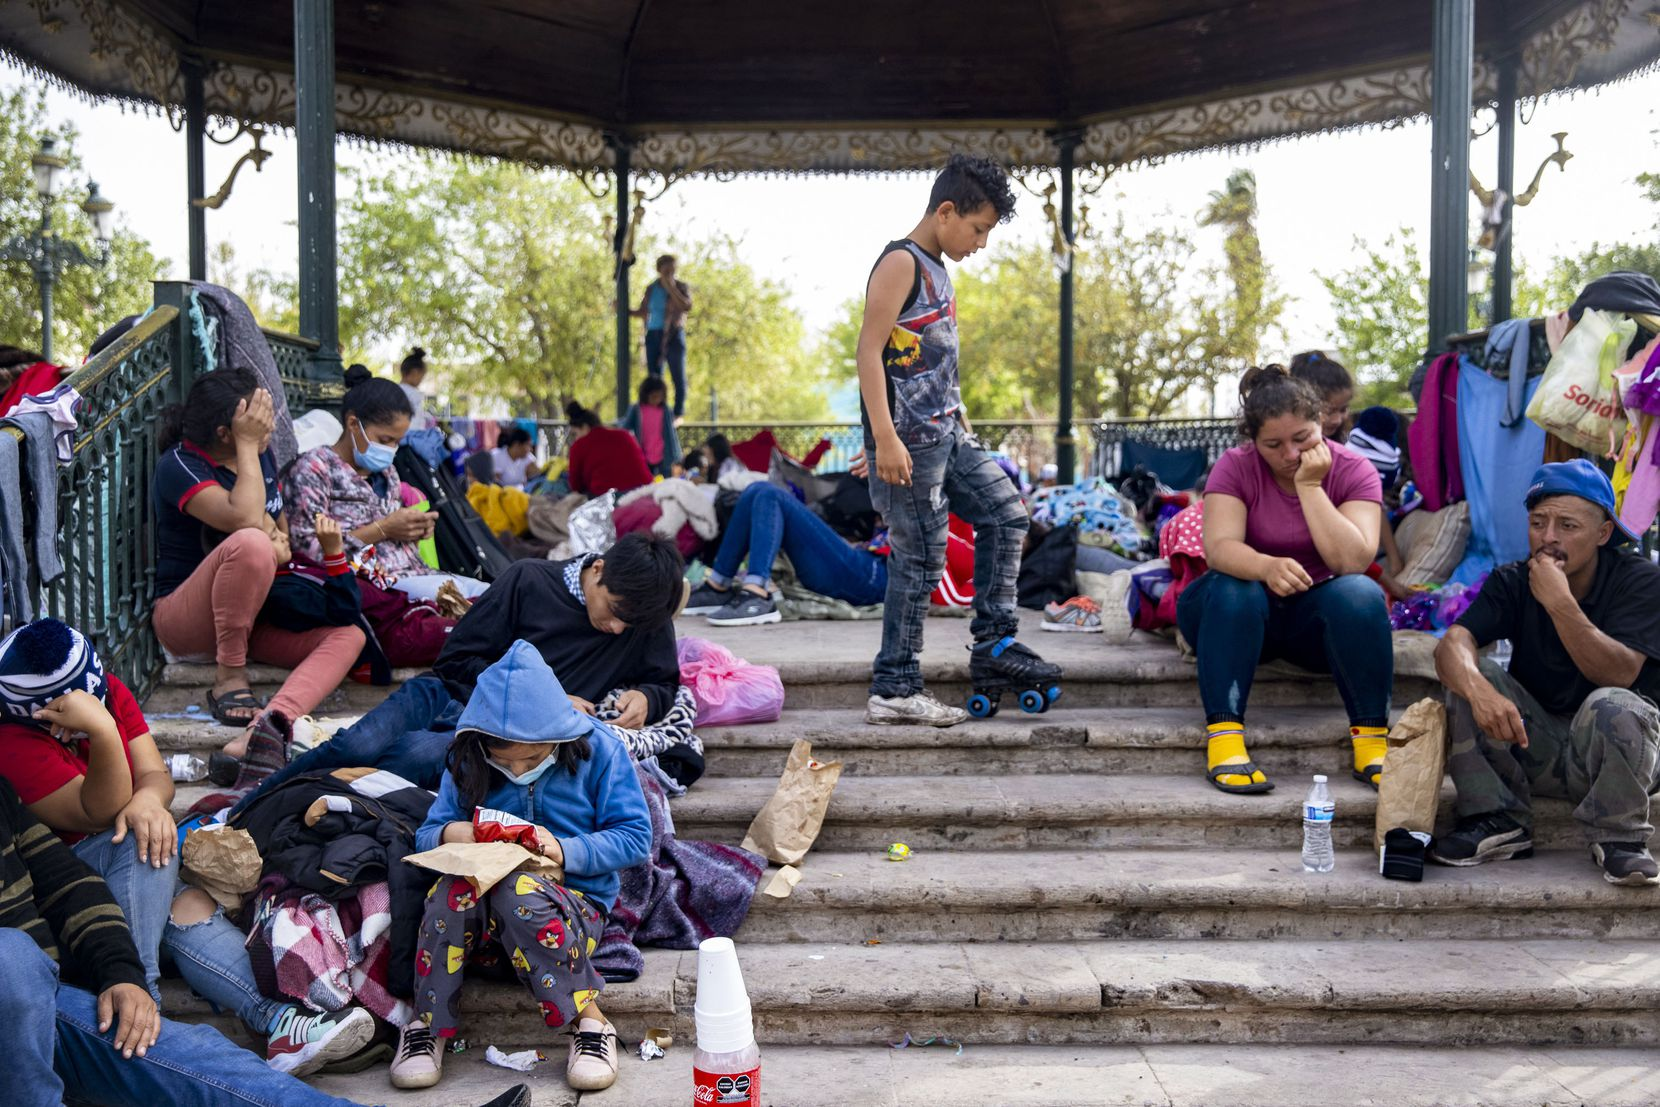 A boy plays with a roller-skate as other expelled migrants sit around a gazebo in a public square in the Mexican border city of Reynosa on Wednesday, March 31, 2021. Migrants have resorted to living at the plaza as the U.S. continues to expel migrants under Title 42 — a pandemic-related public order still in place and left over from the Trump administration.